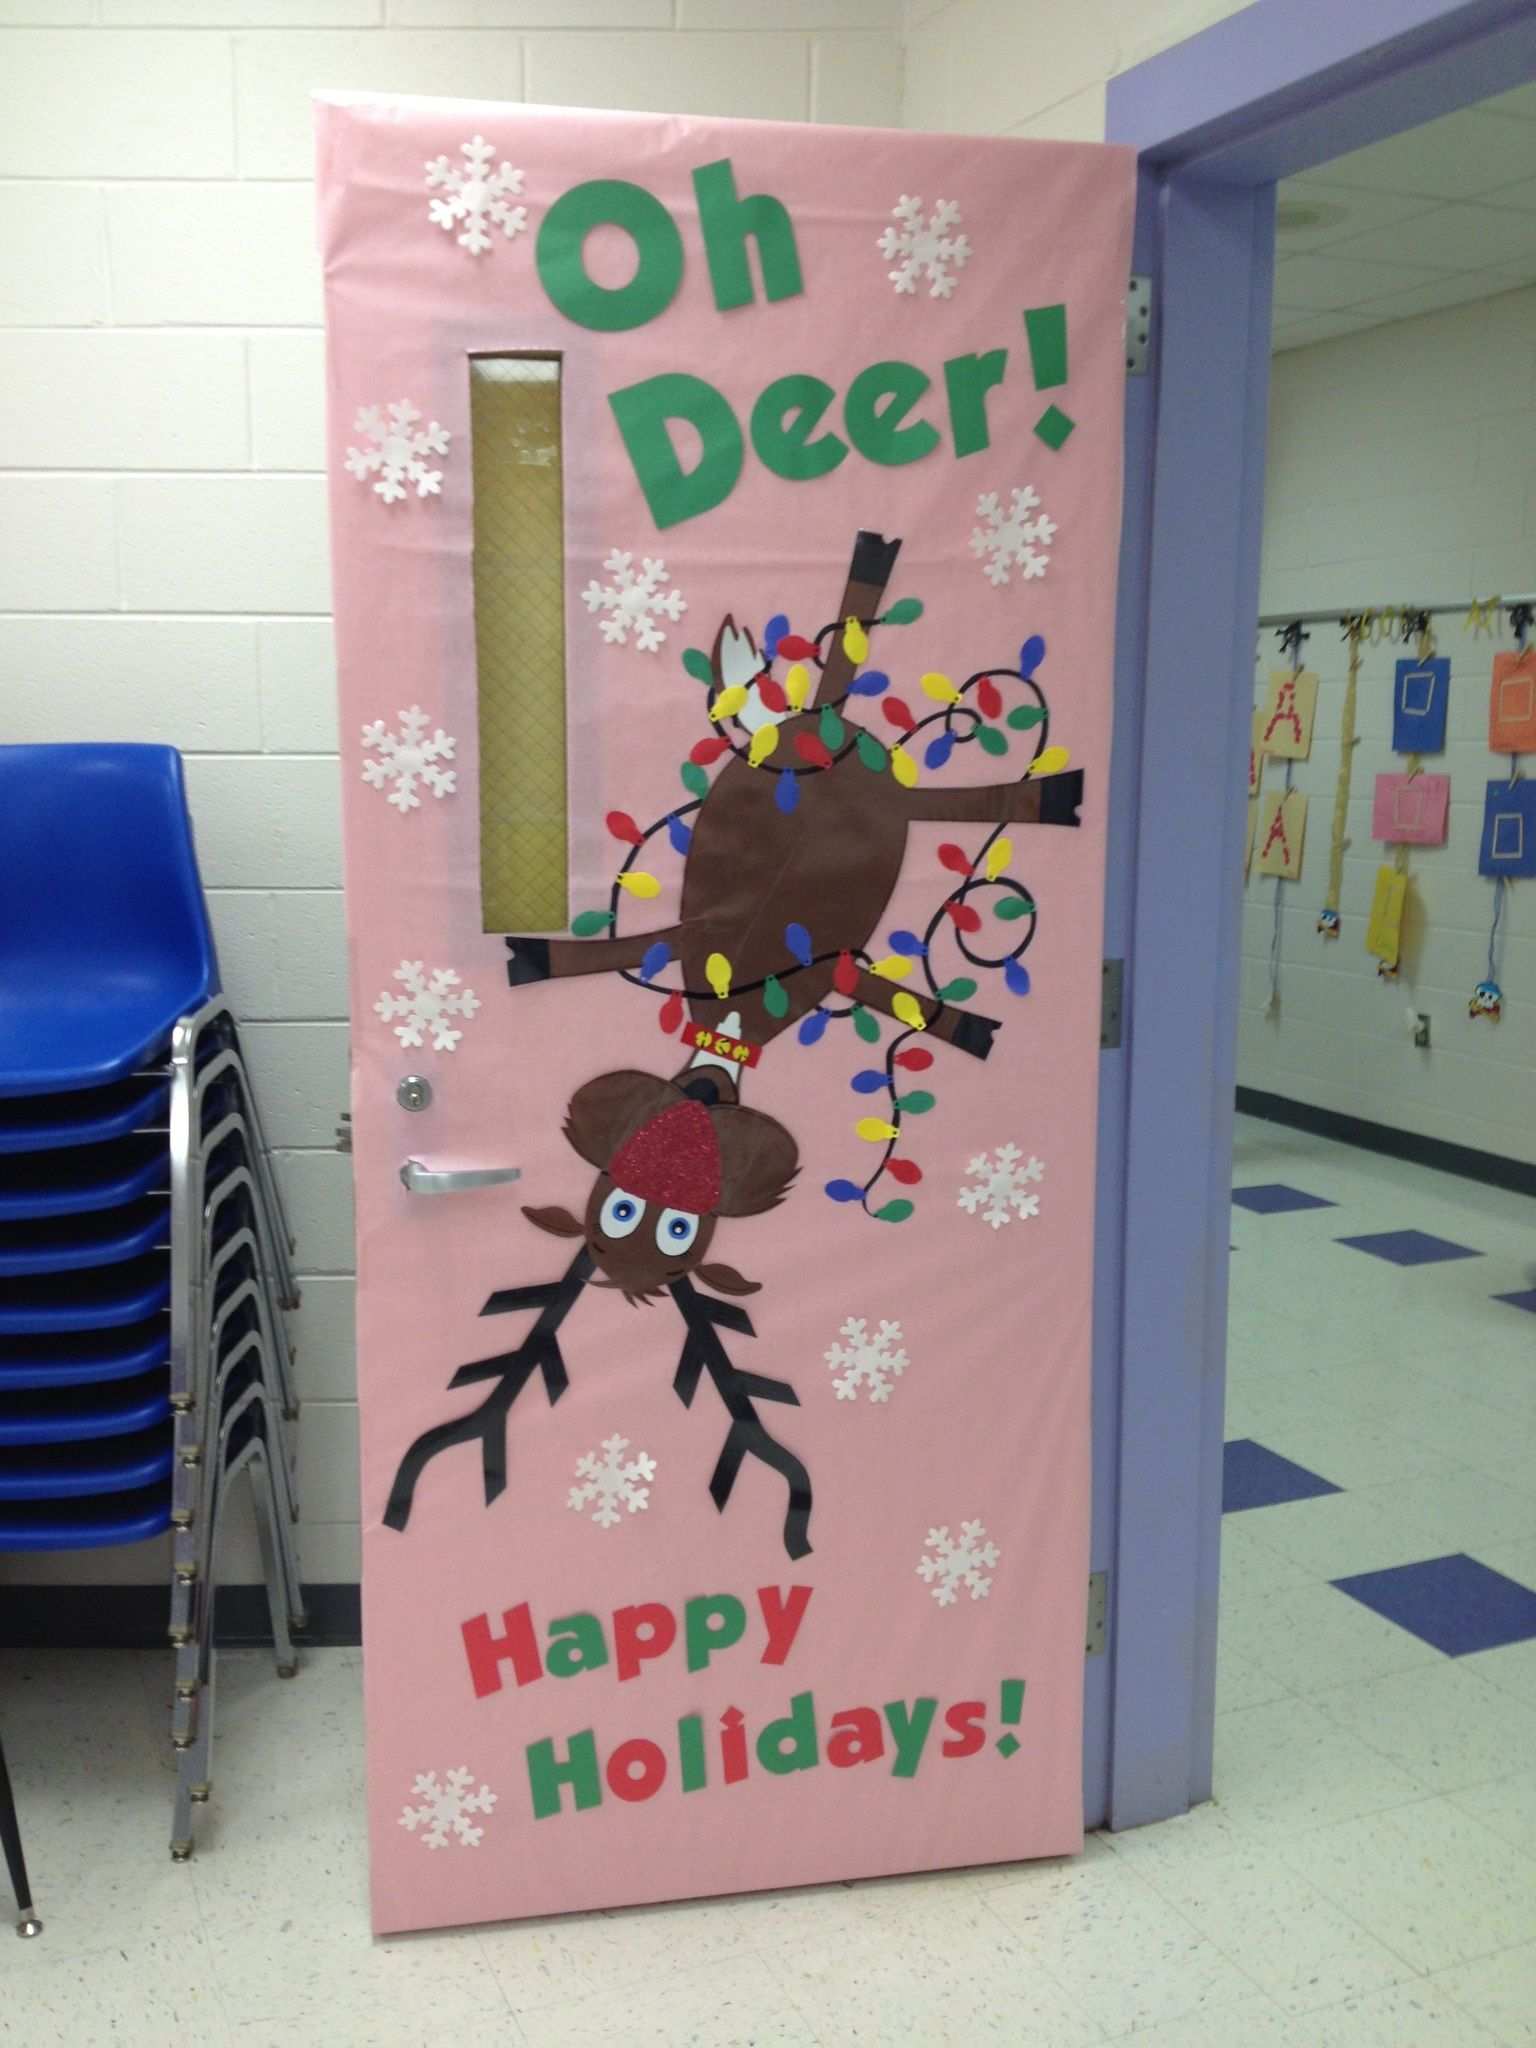 Going back to this idea with team mateher door the reindeer will be